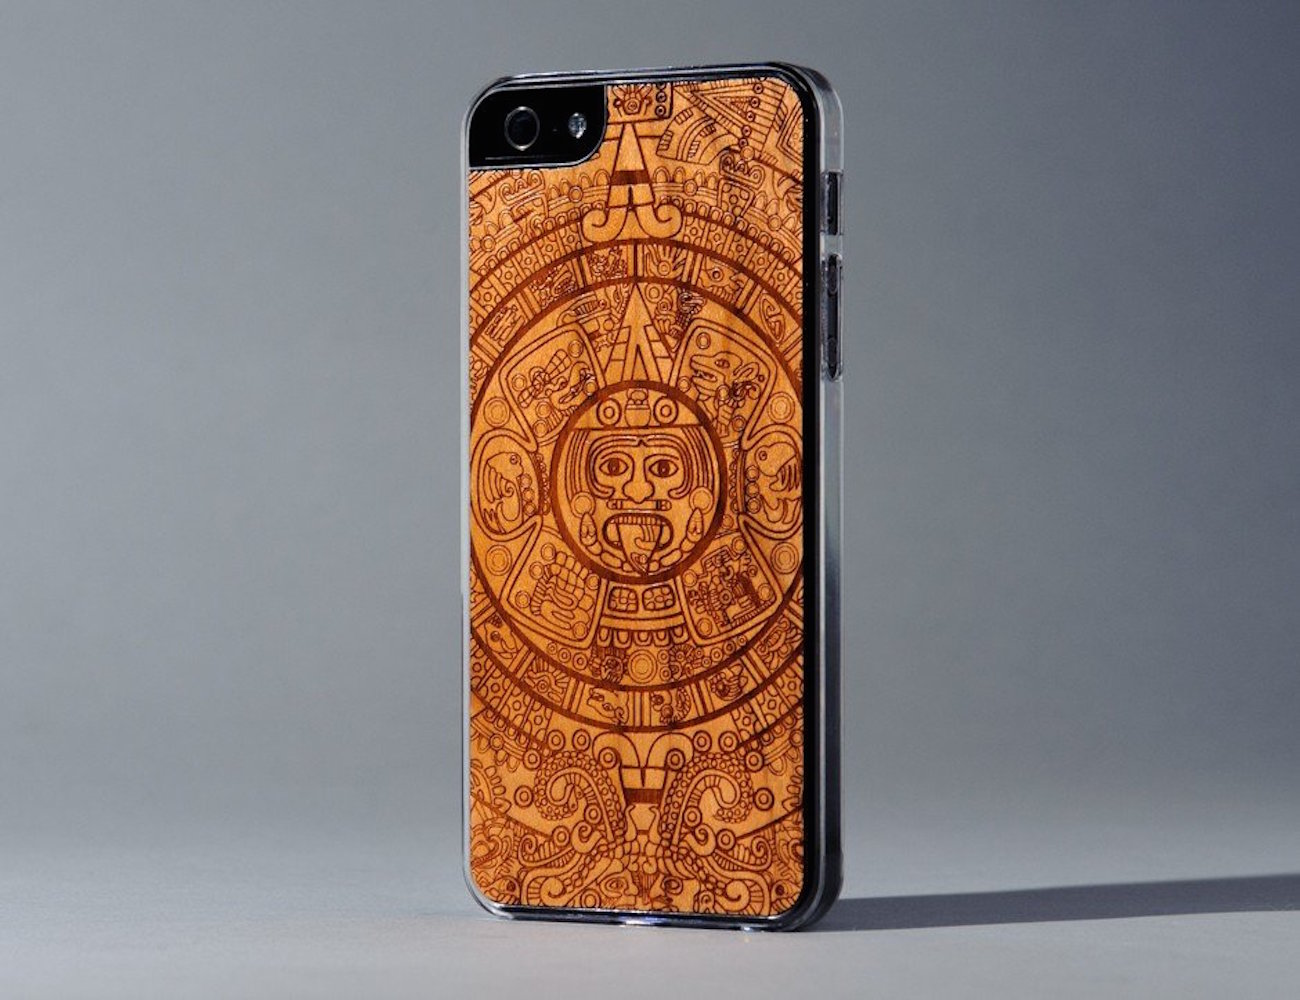 Aztec Calendar iPhone SE/5s Case by Carved